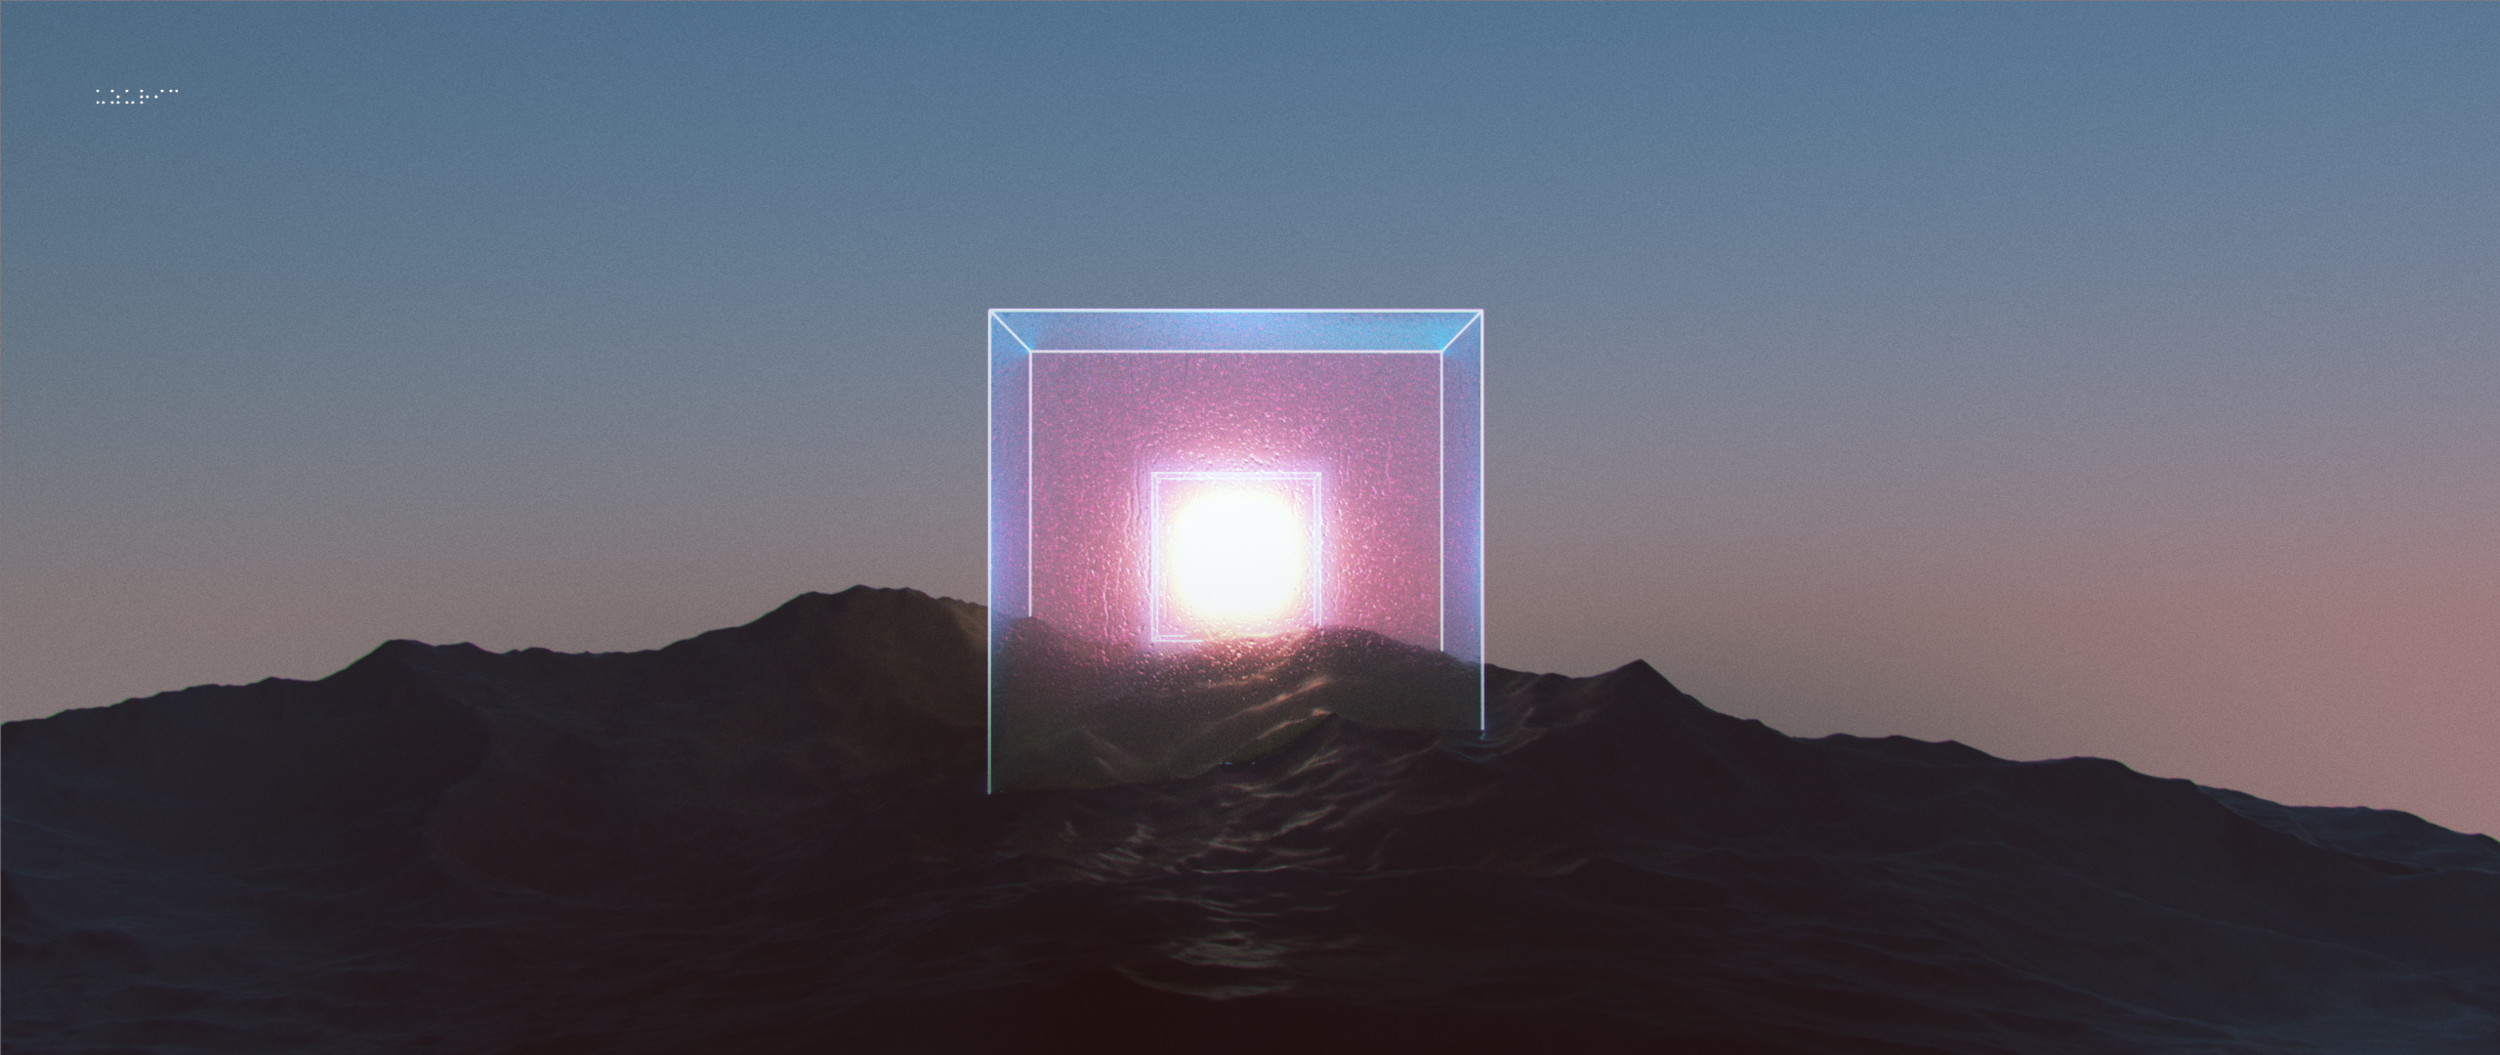 012_2017.png